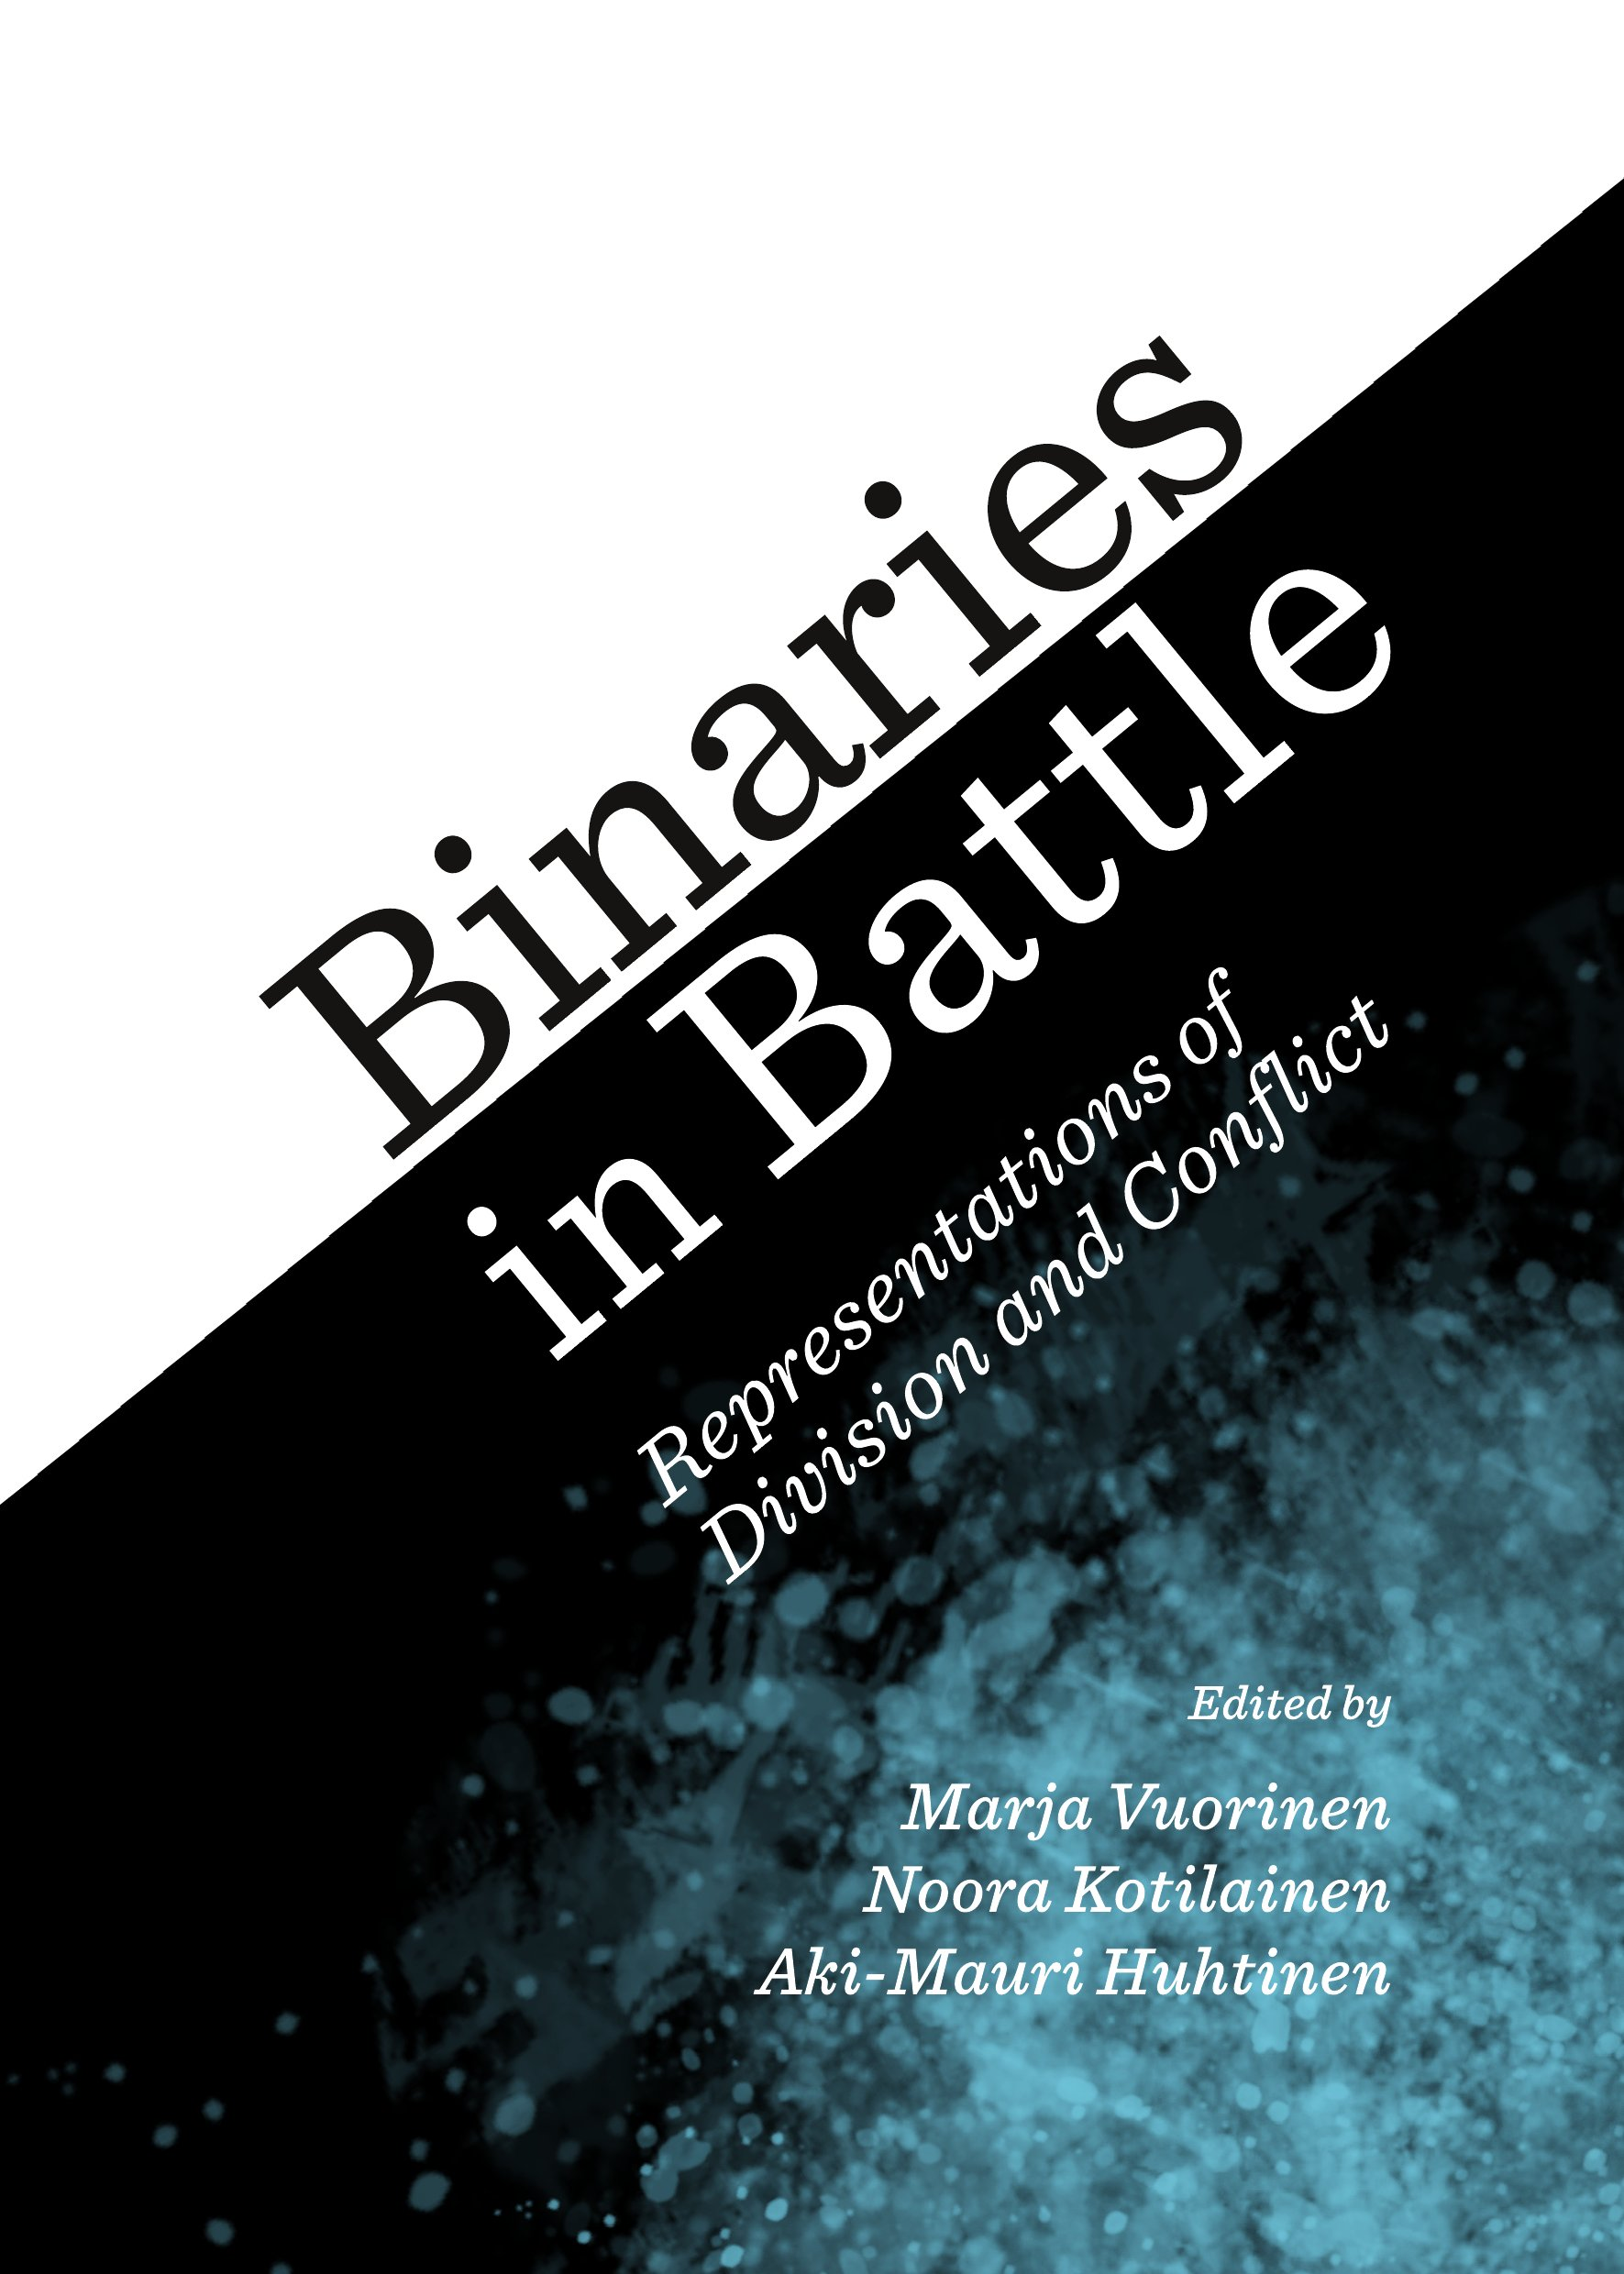 Binaries in Battle: Representations of Division and Conflict